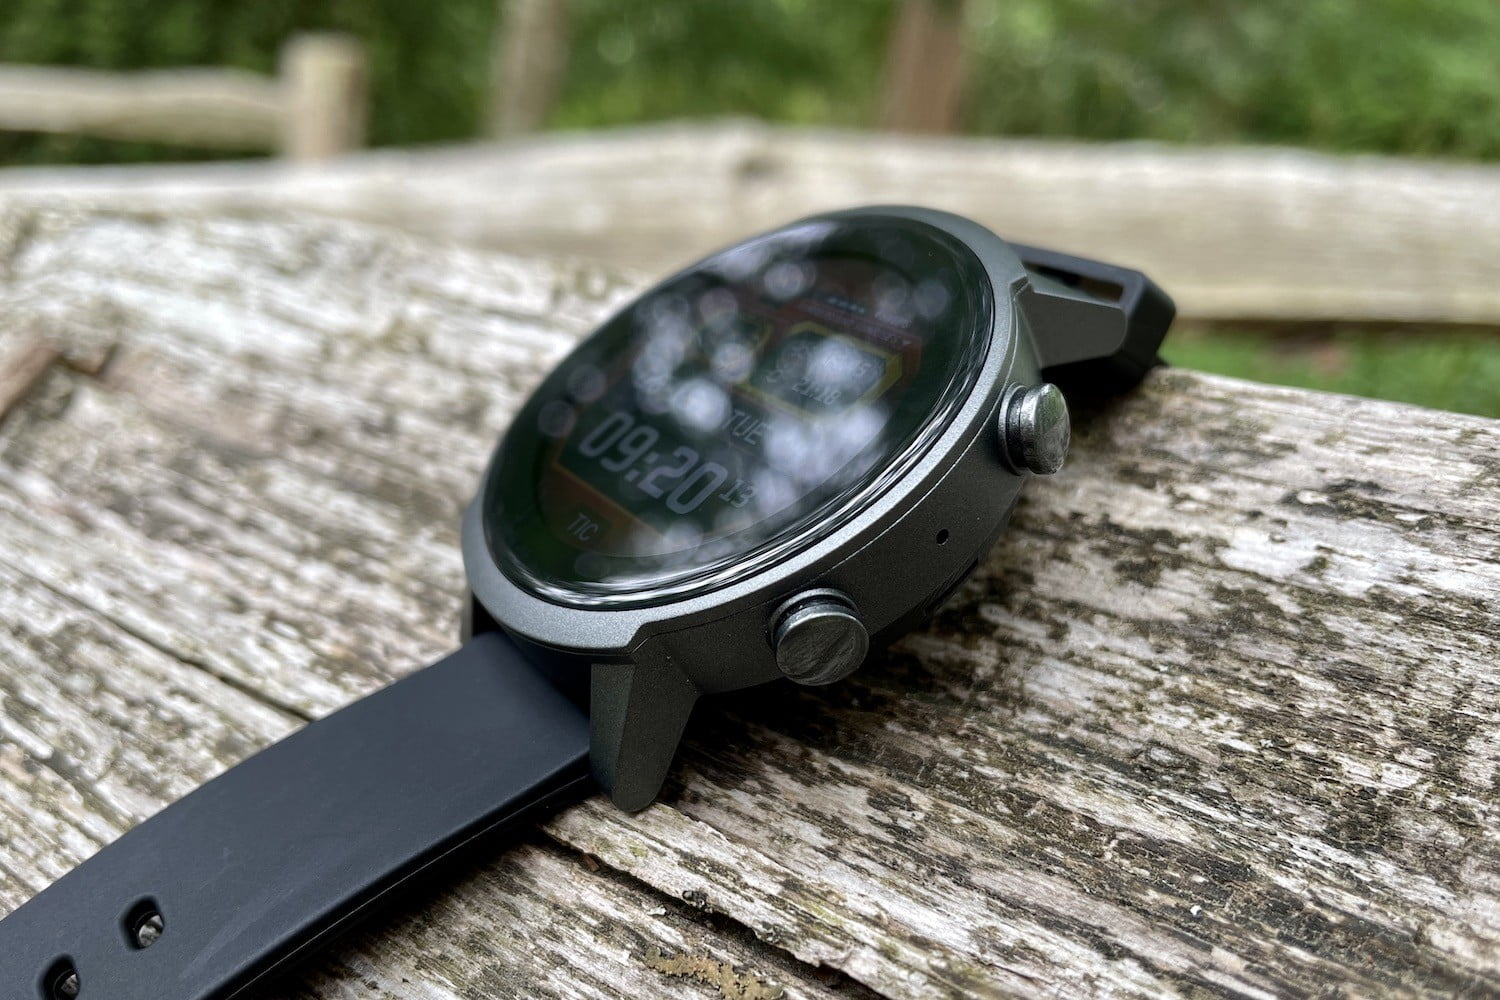 TicWatch E3 seen from the side